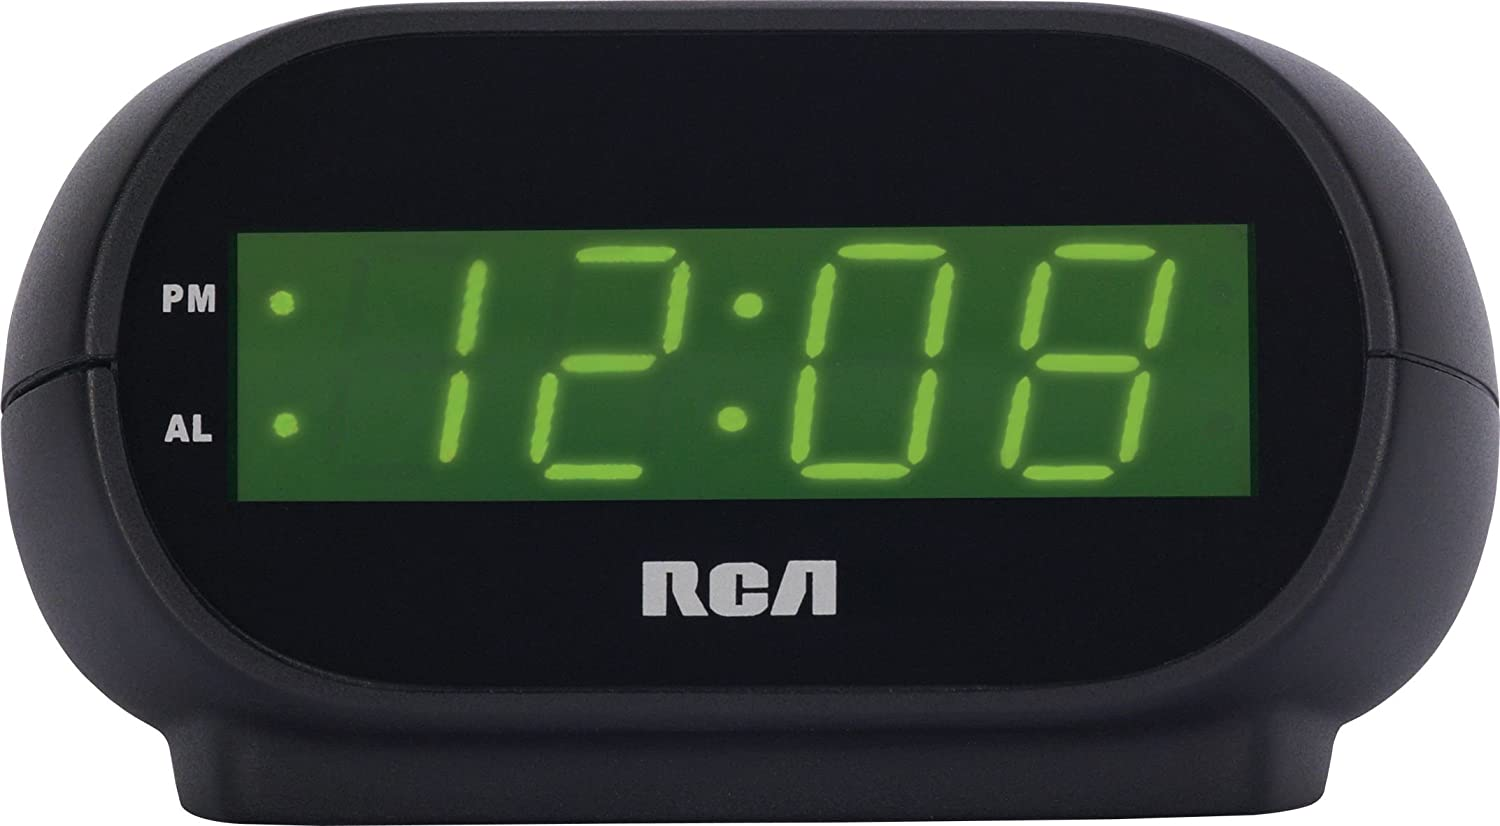 Rca RCD20 High Quality Alarm Clock and 0.7-Inch LCD